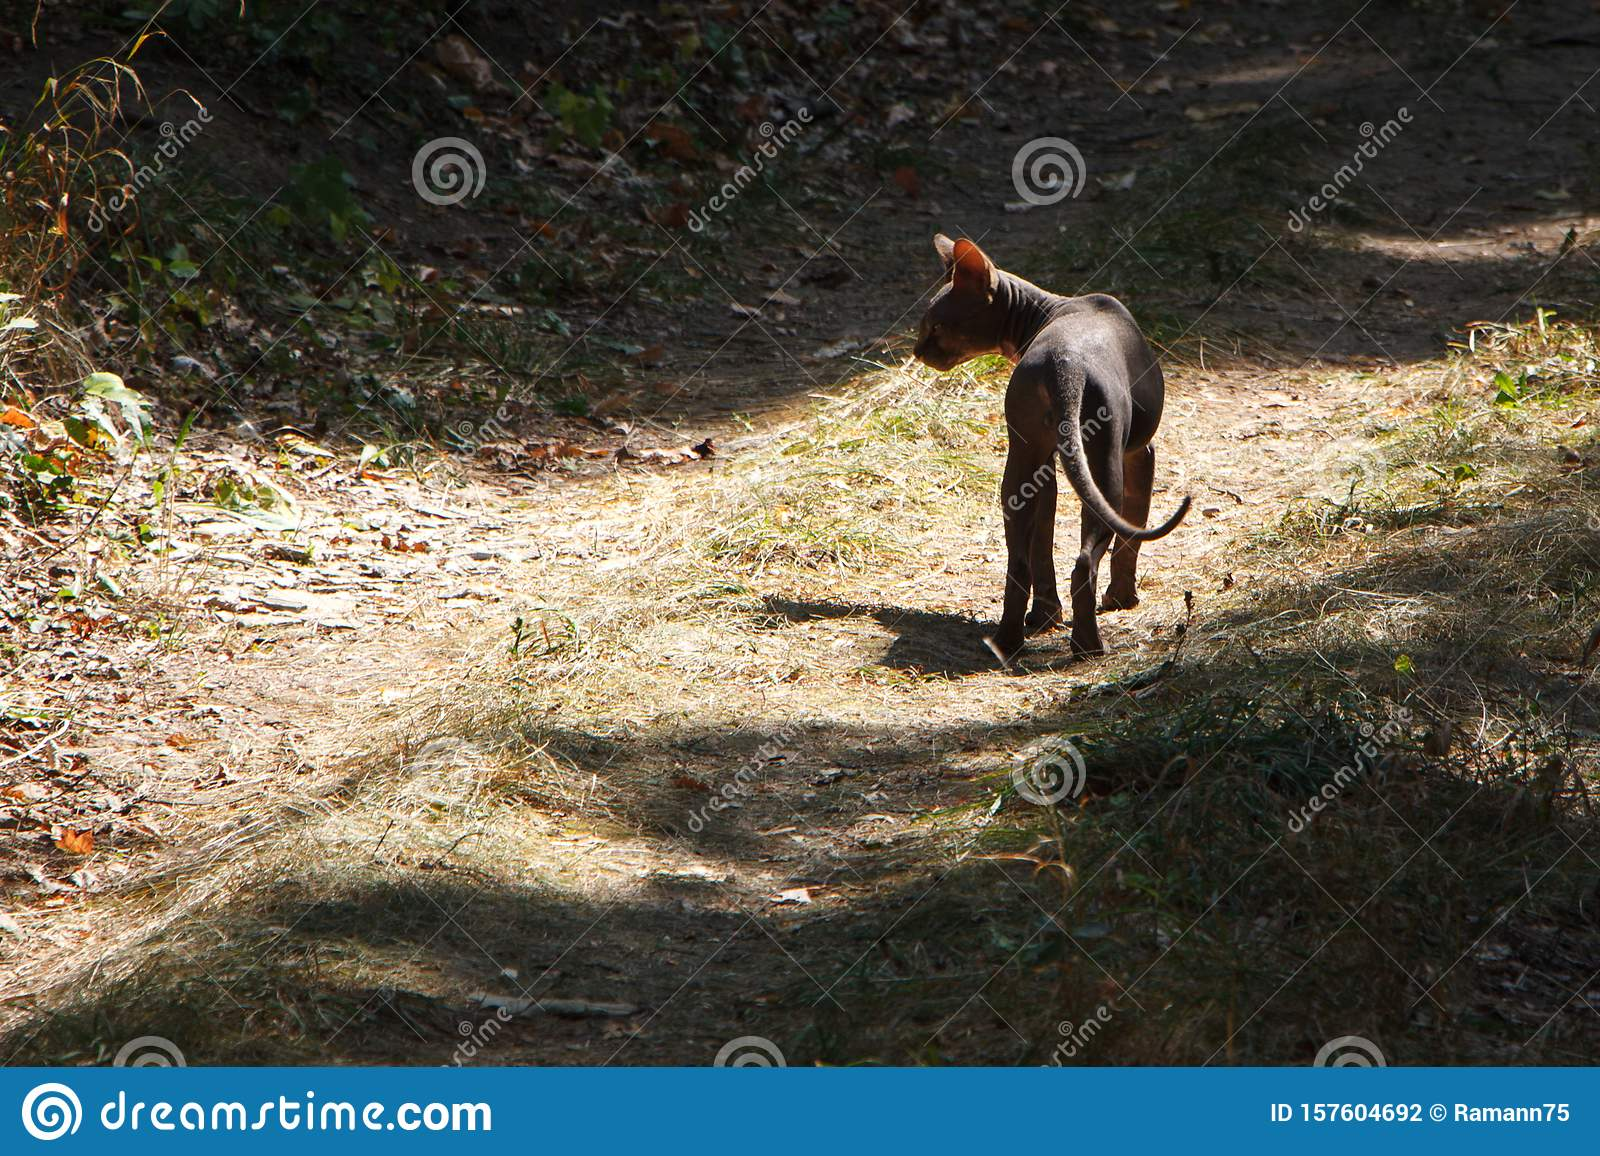 Black wild sphynx cat walks on a farm road in the forest, selective focus